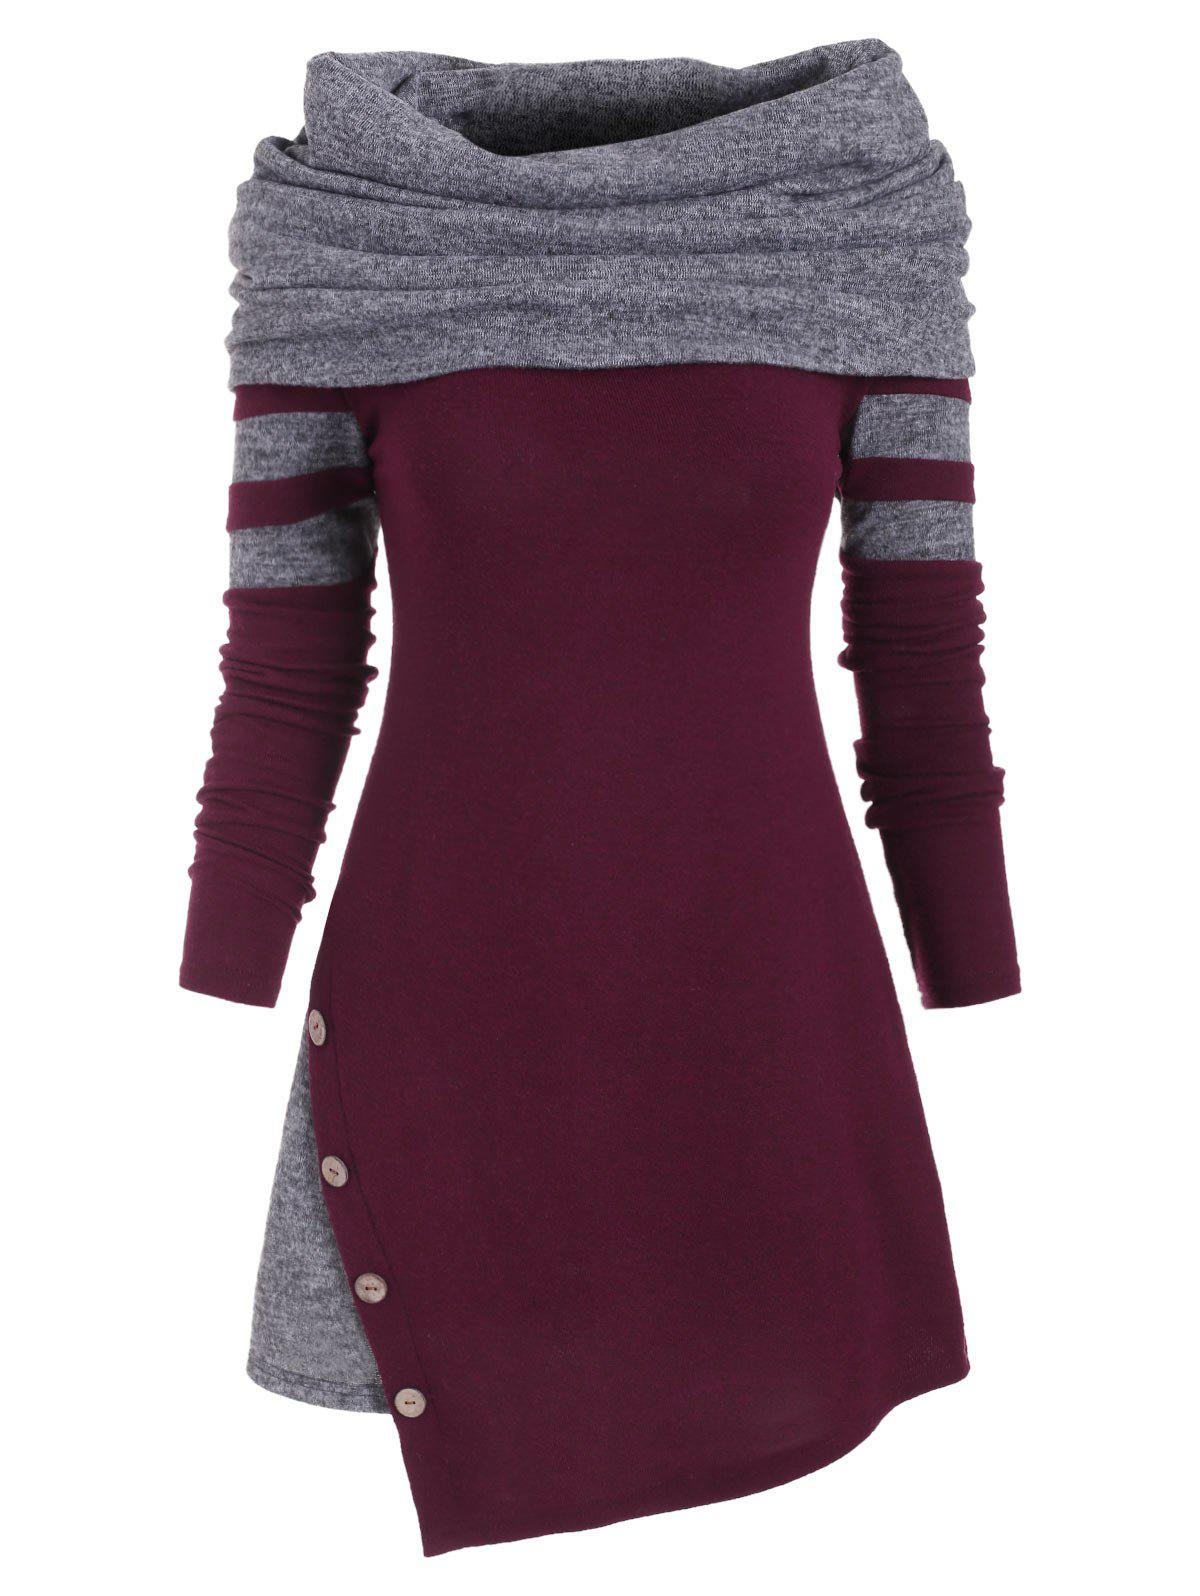 Buttons Colorblock Asymmetric Capelet Knitwear - RED WINE S